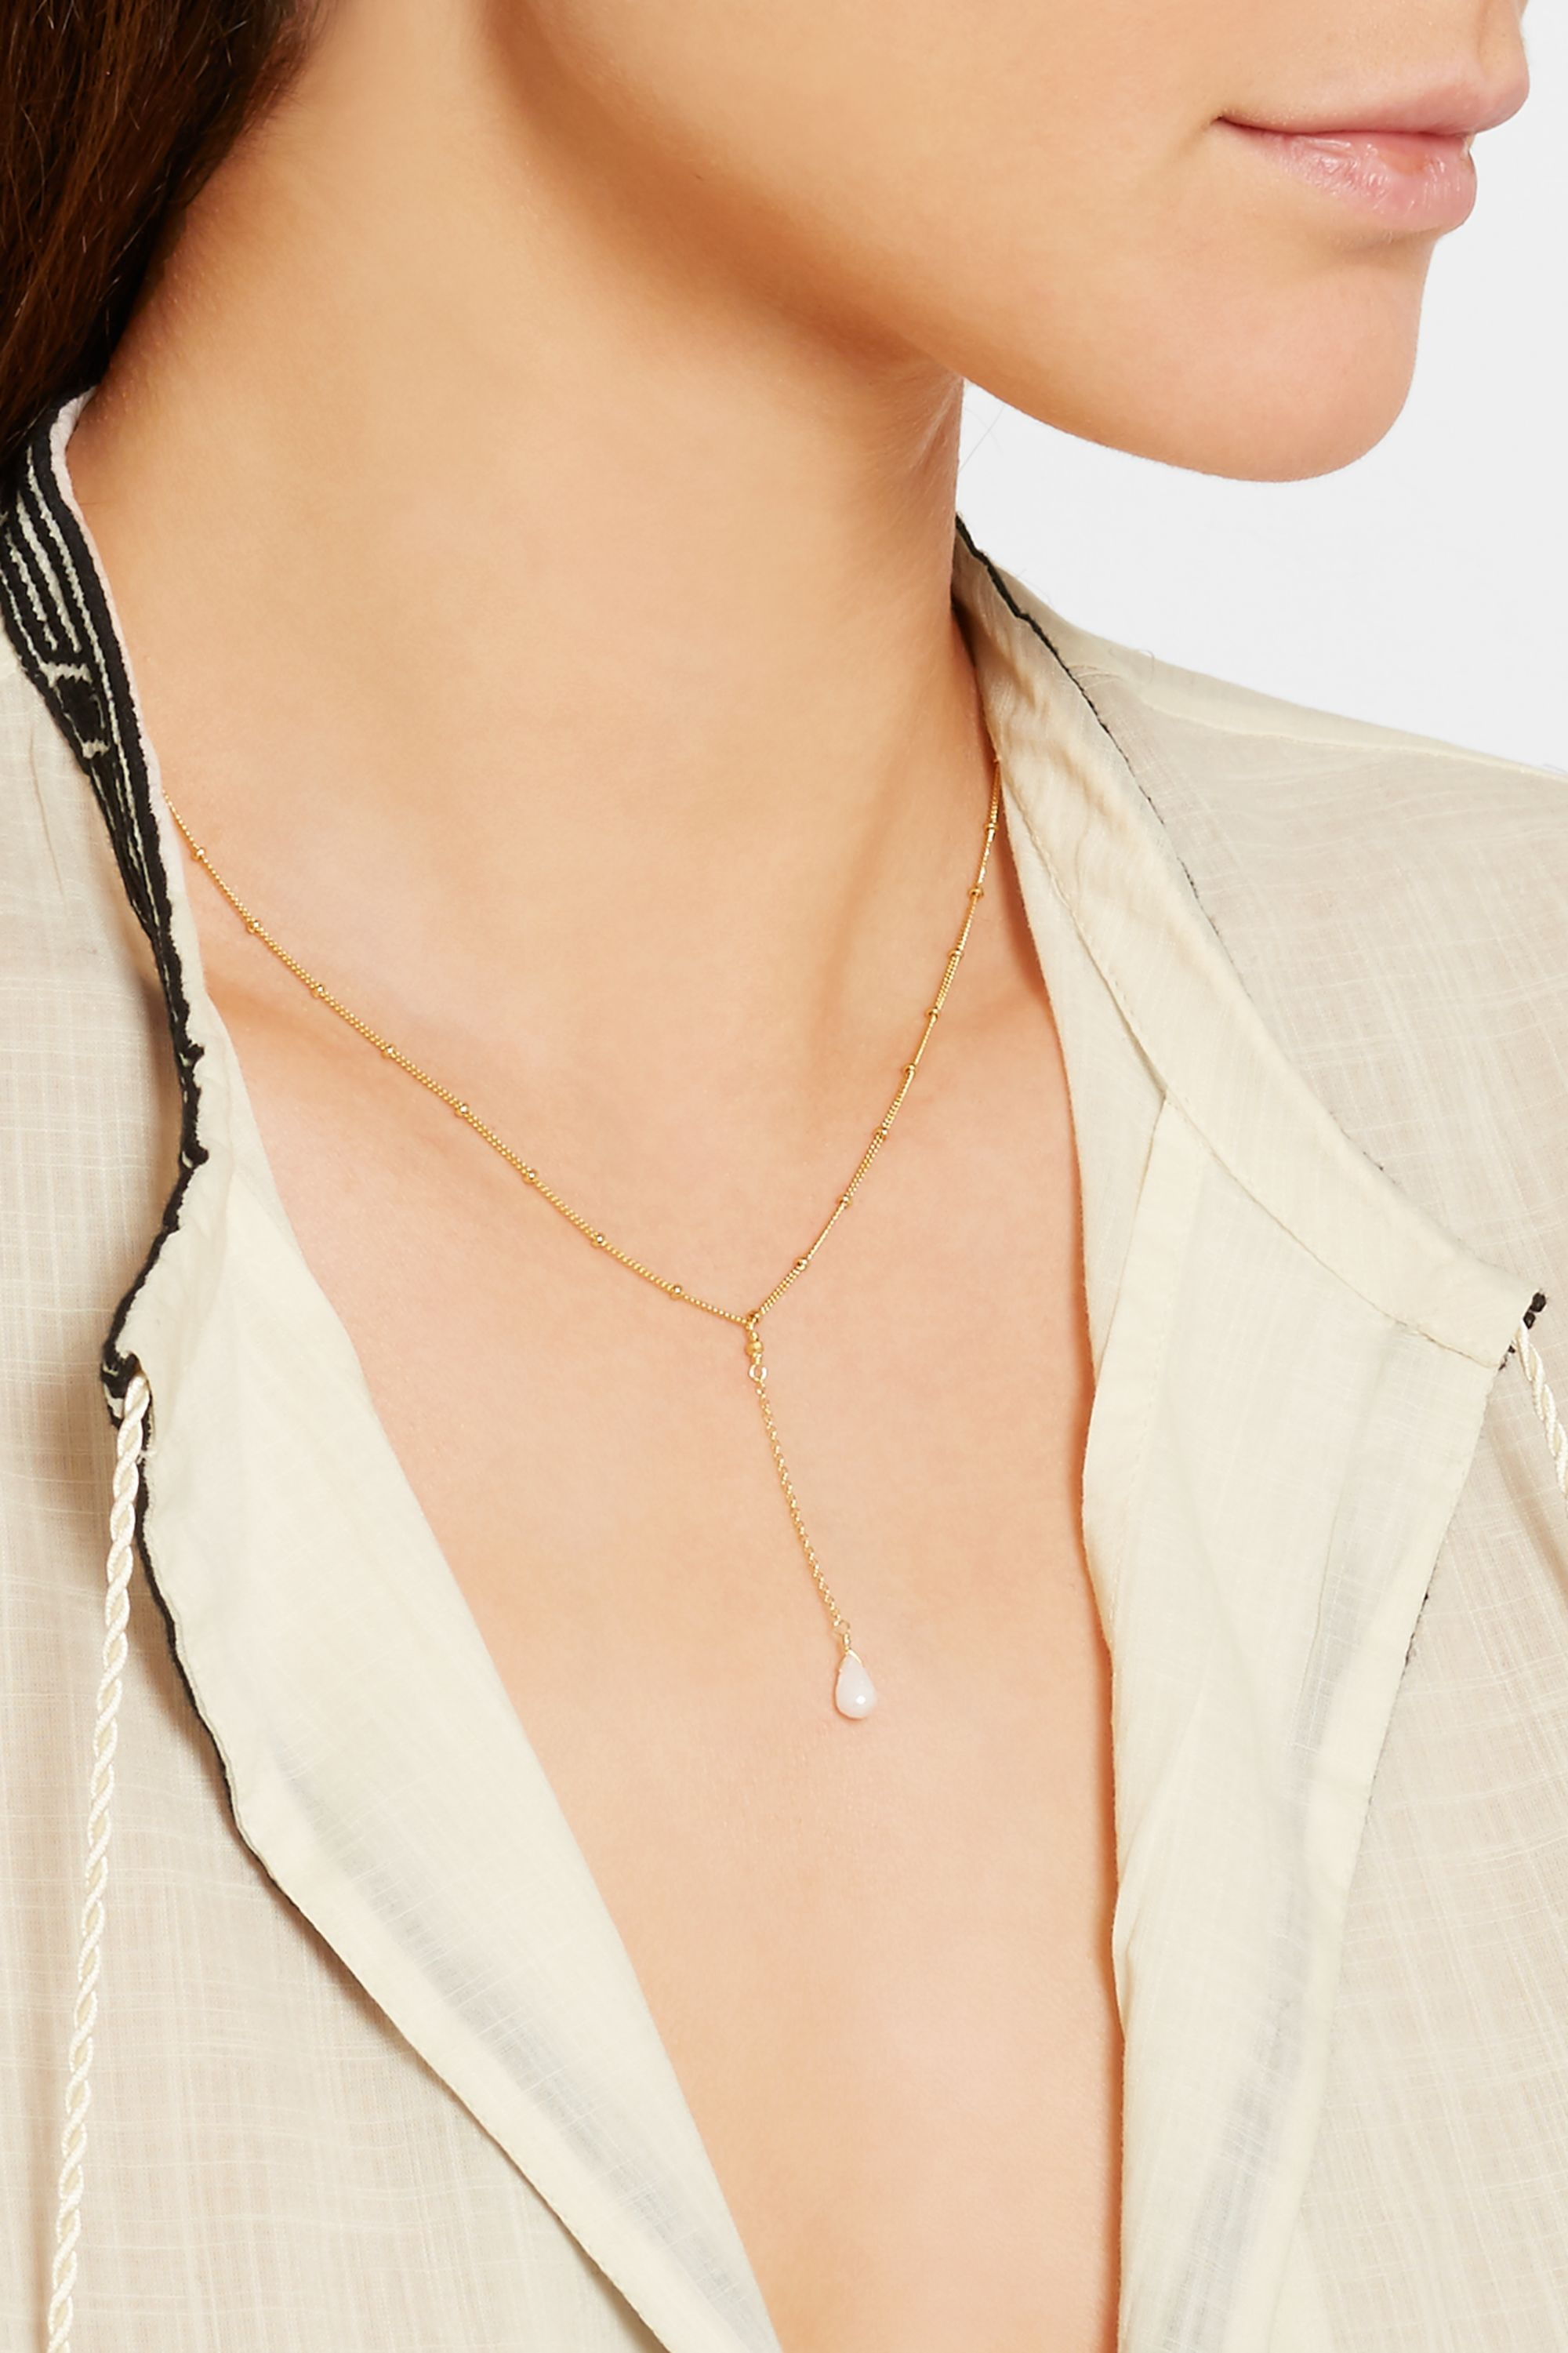 Chan Luu Gold-plated silverite necklace